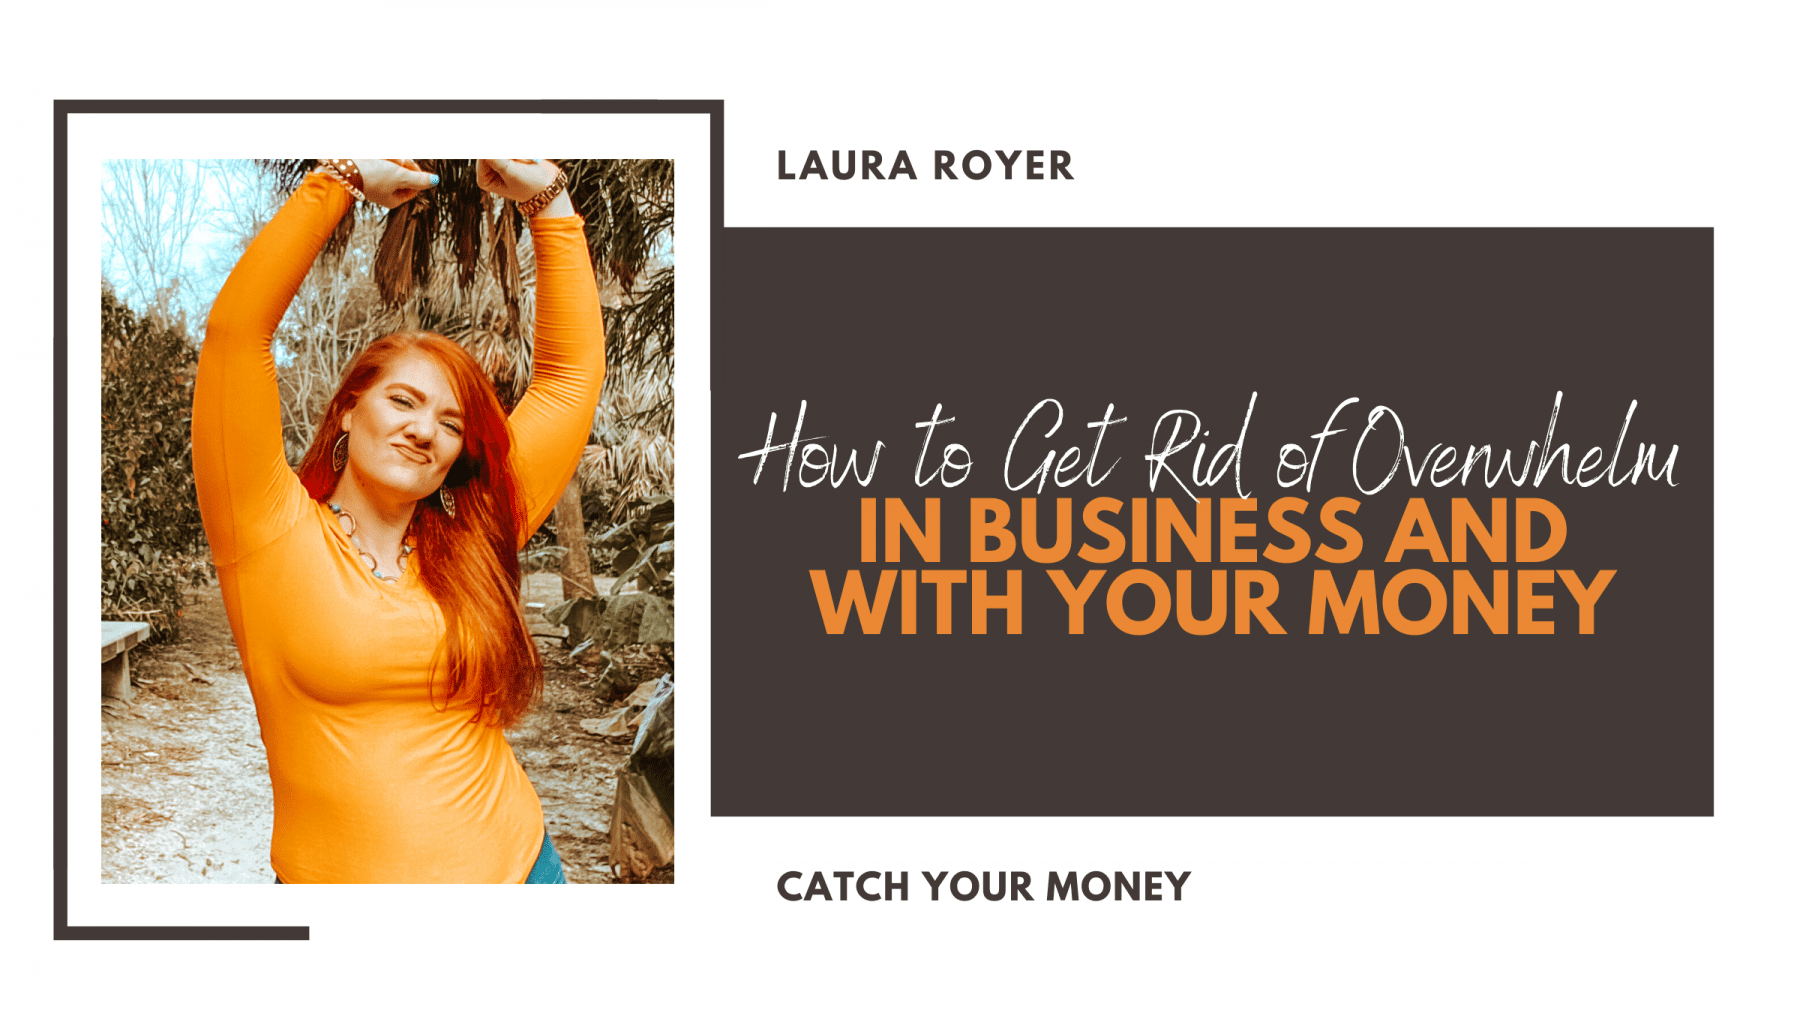 Is the stress just too much and you feel you're losing control of your business or finances? It's time to get rid of the overwhelm!